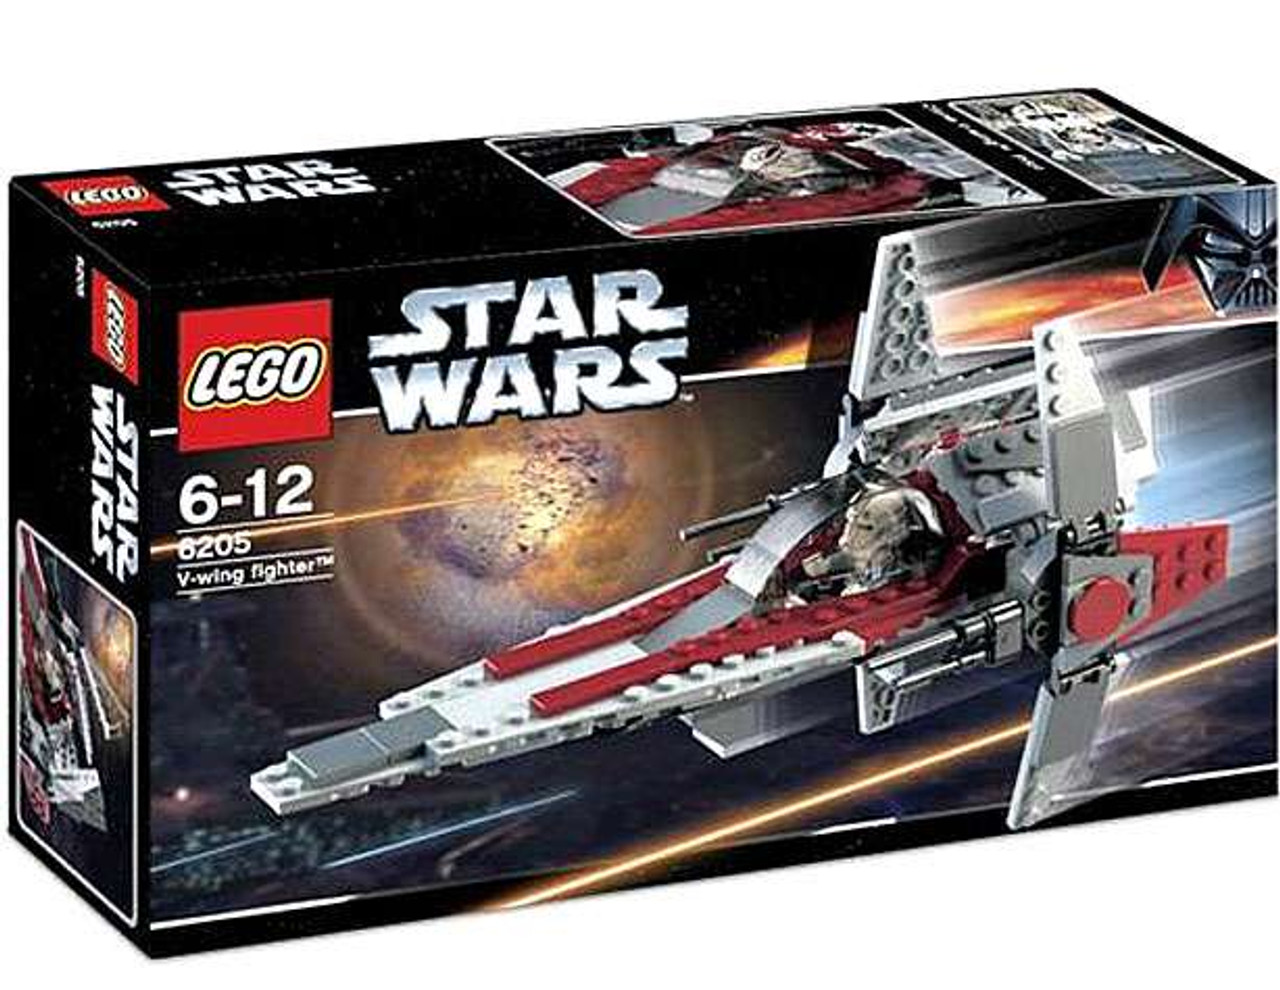 LEGO Star Wars Revenge of the Sith V-Wing Fighter Set #6205 [Damaged Package]